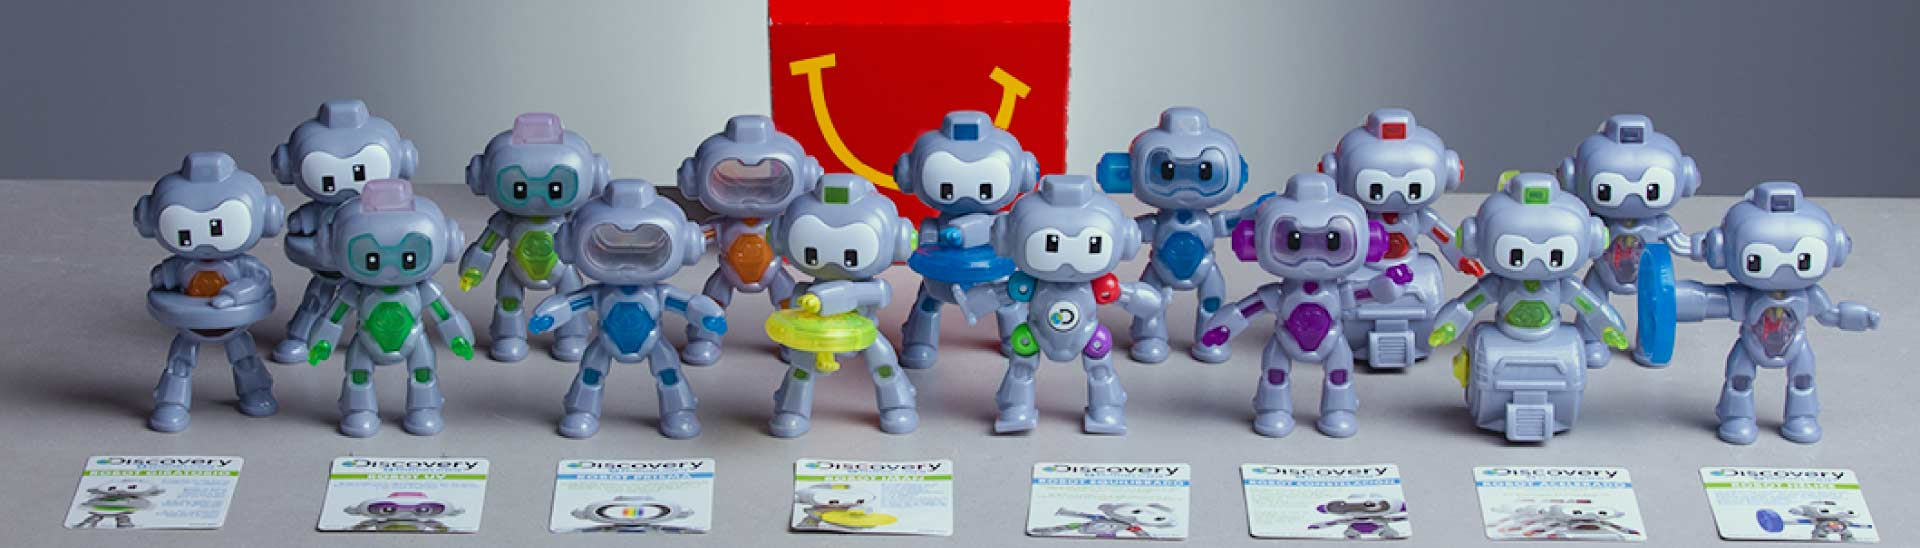 Foto: cortesía McDonalds Colombia.